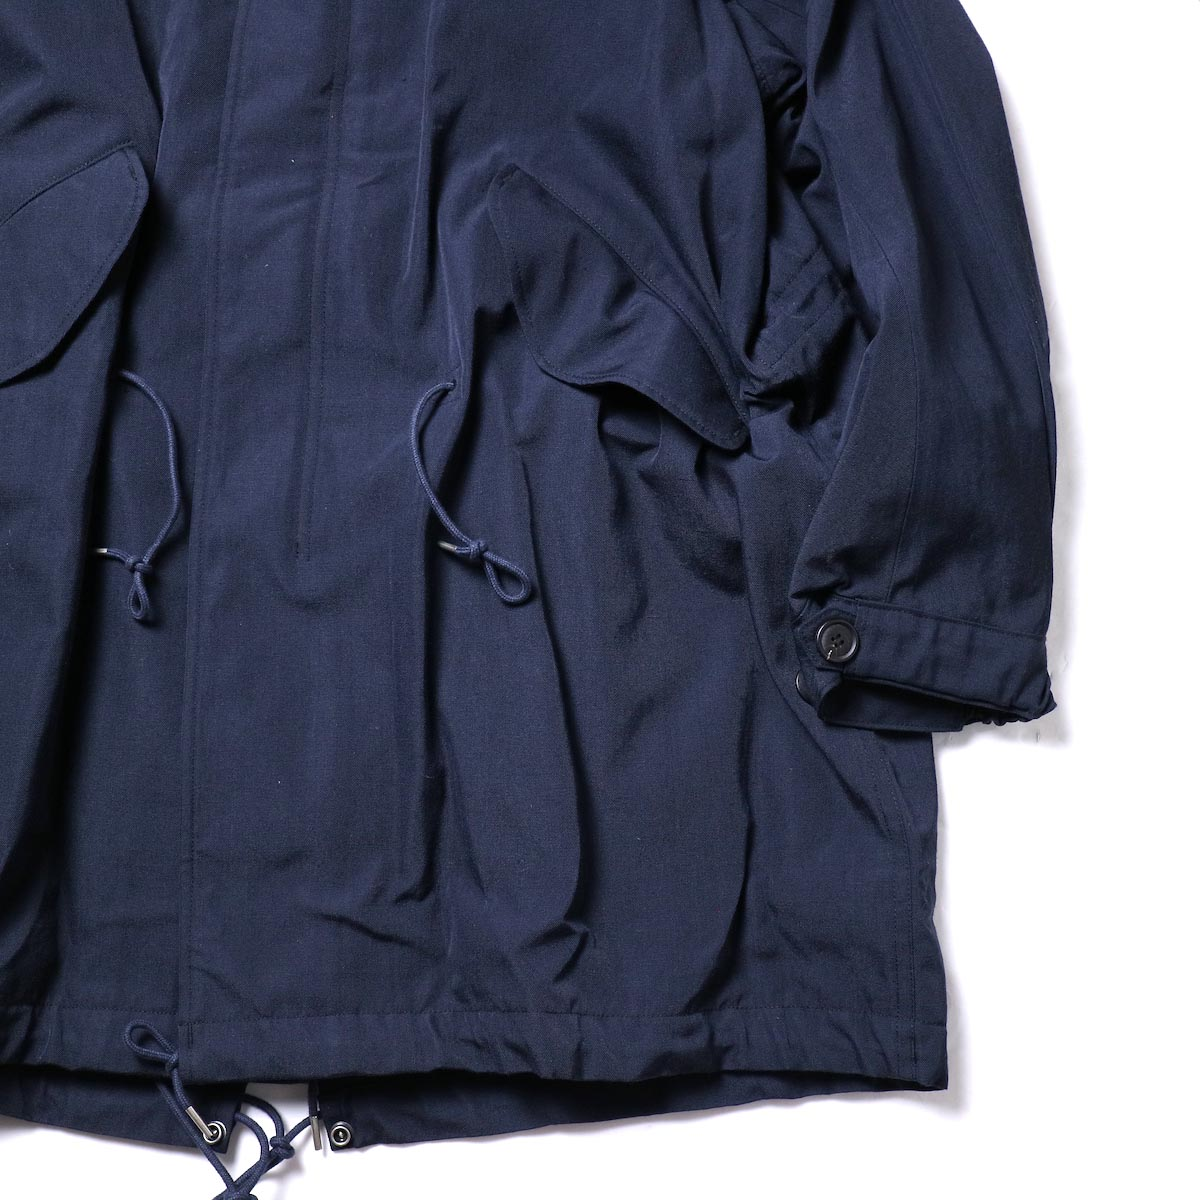 visvim / SIX-FIVE FISHTAIL PARKA (W/L) (Navy)裾、袖